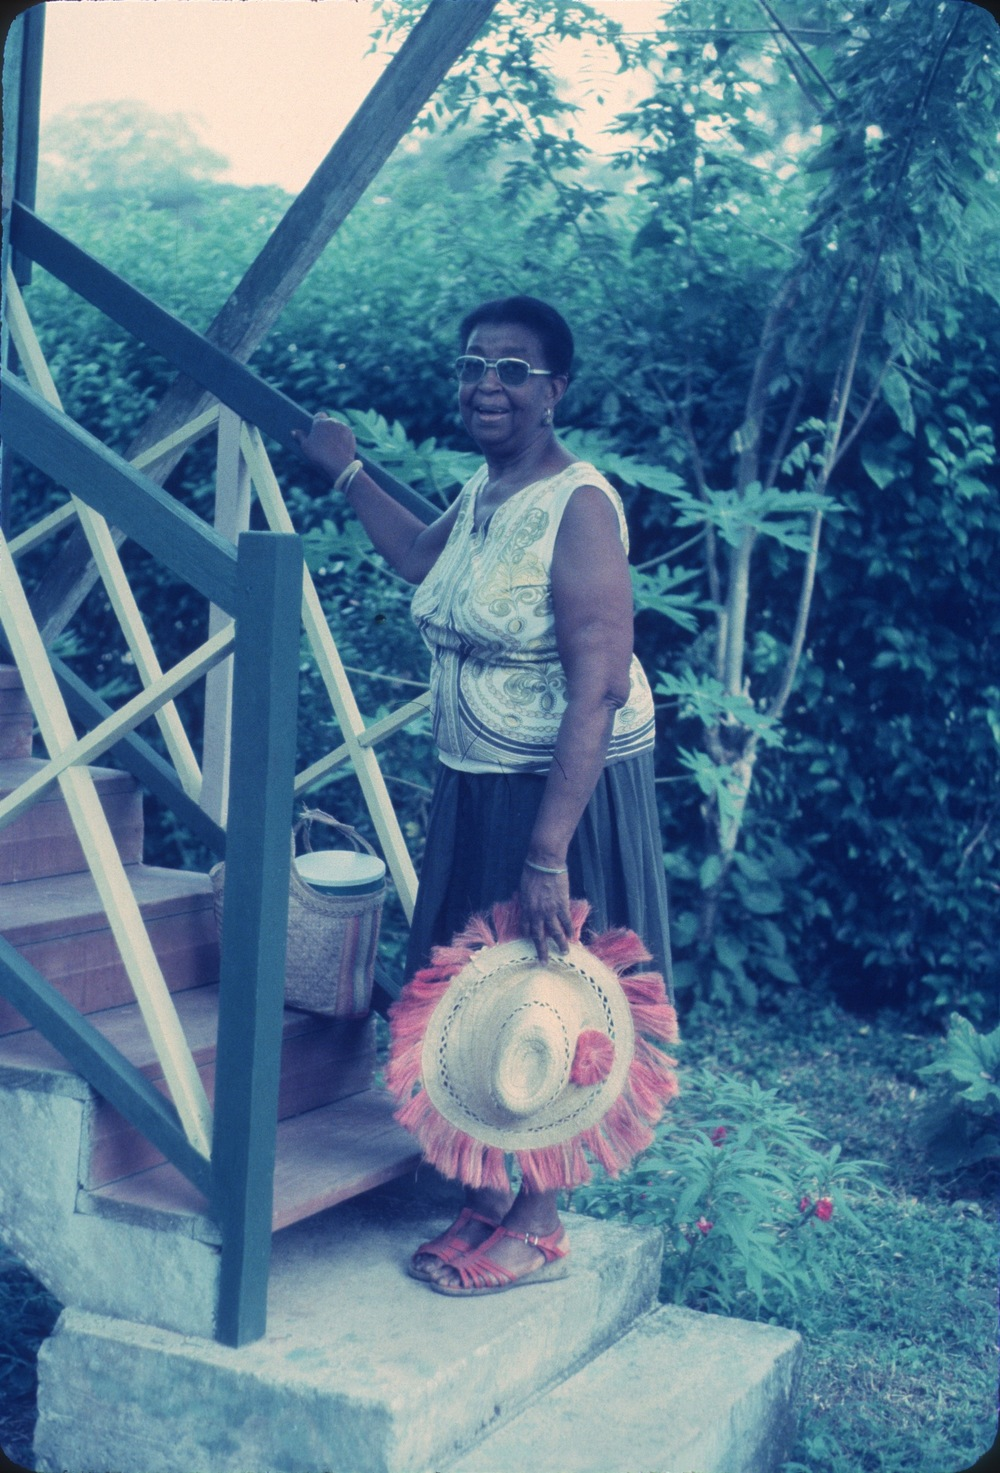 DM_001_008    Miss Ella    Puerto Viejo    5/15/1982    Miss Ella lived in the second house on Black Beach   Photographer: Dan Miller